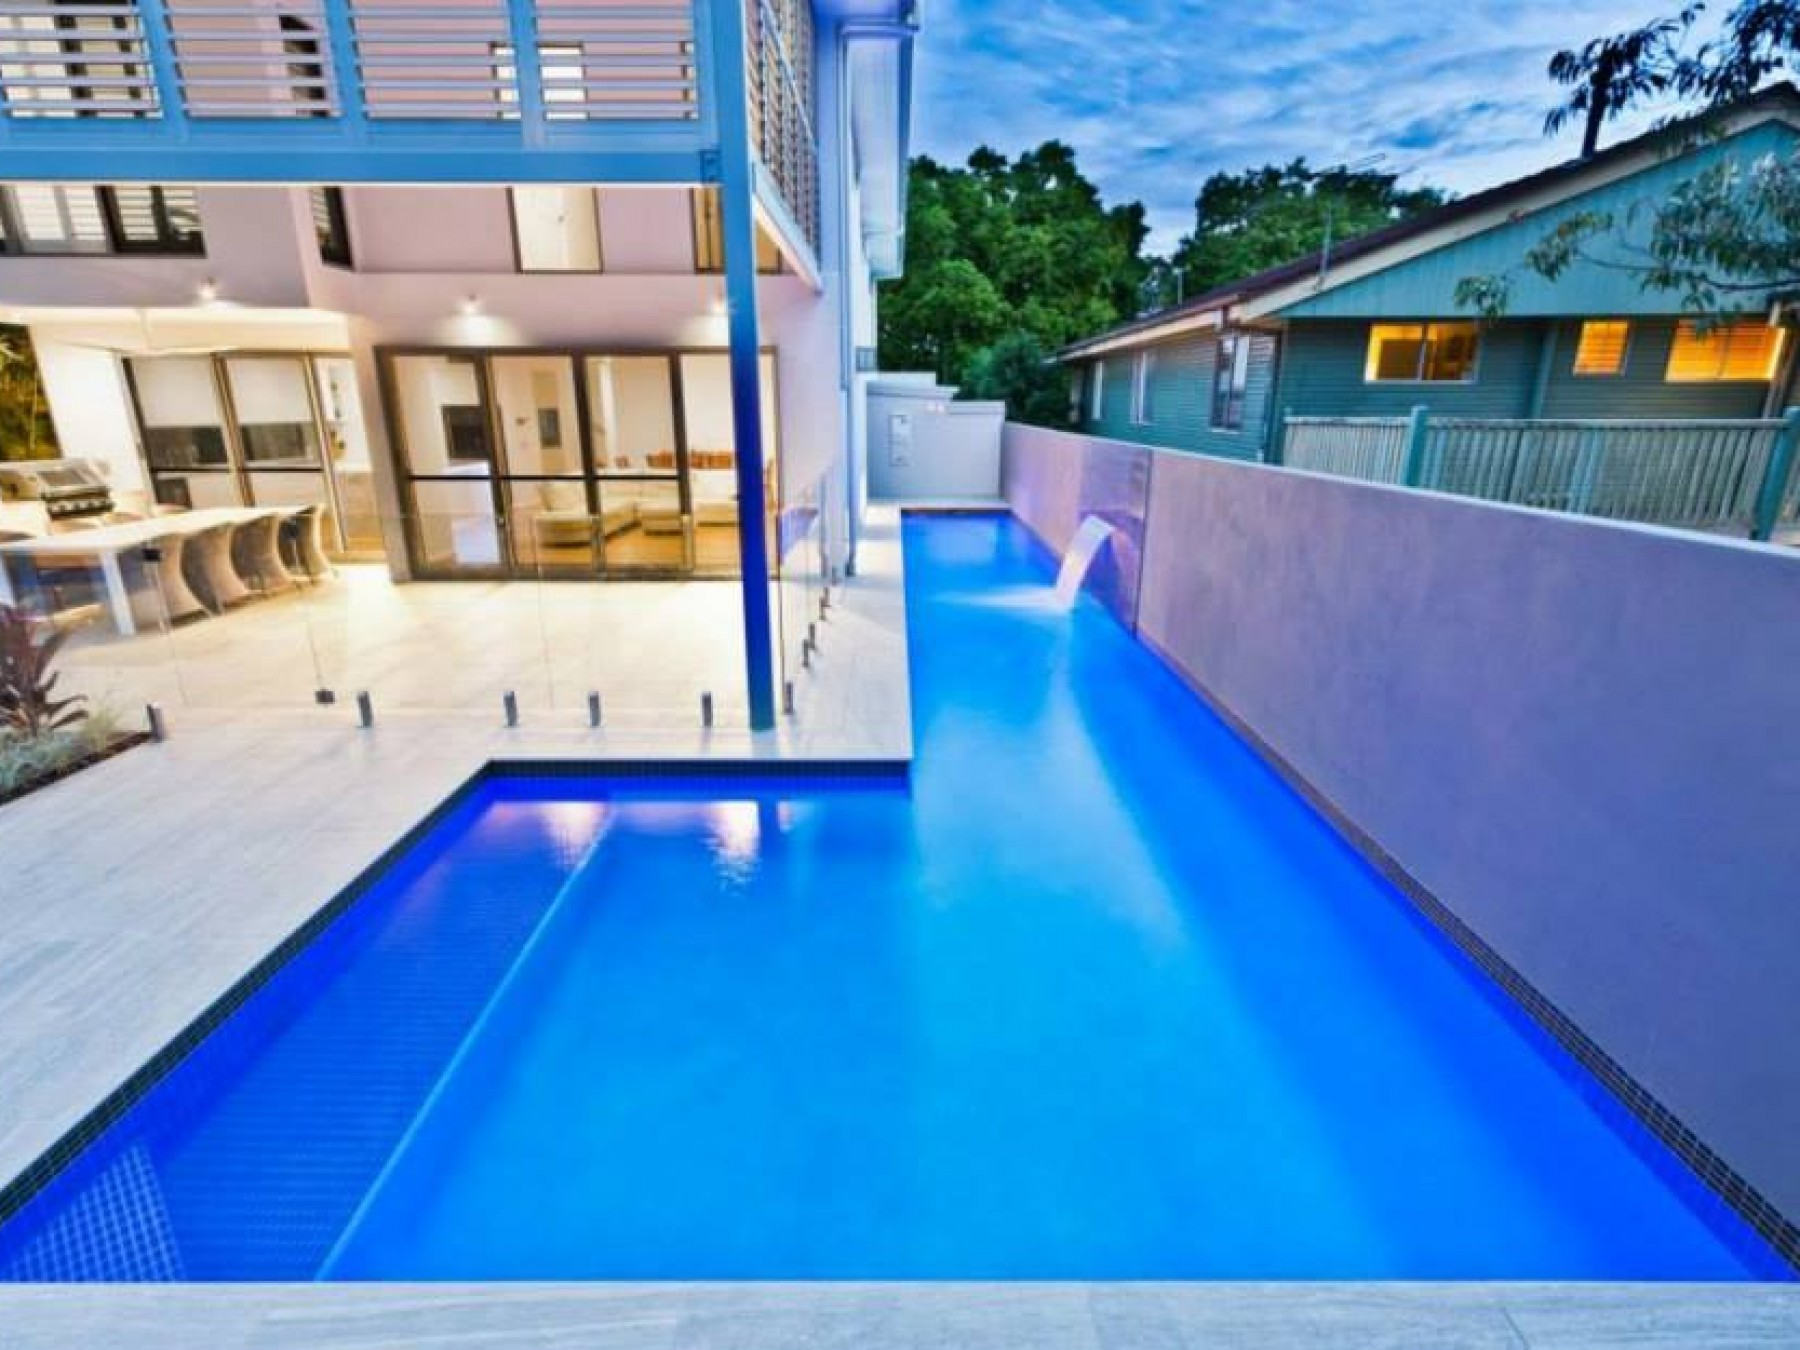 Selling or Leasing a pool in Eagle Farm